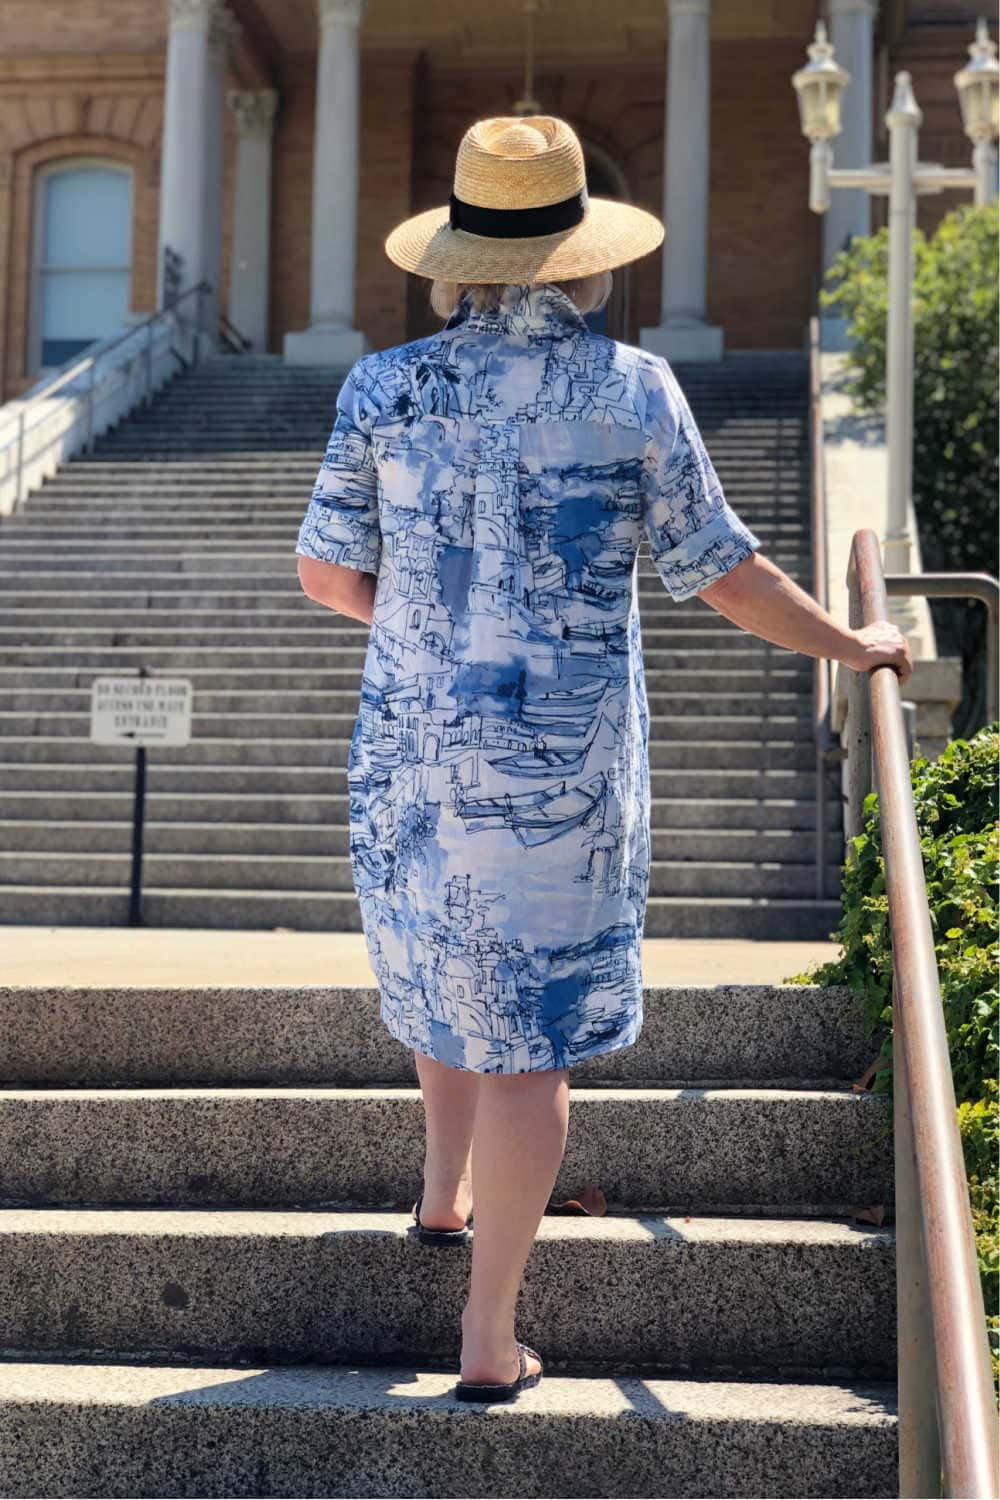 over 50 fashion blogger jennifer connolly wearing santorini linen dress by chico's